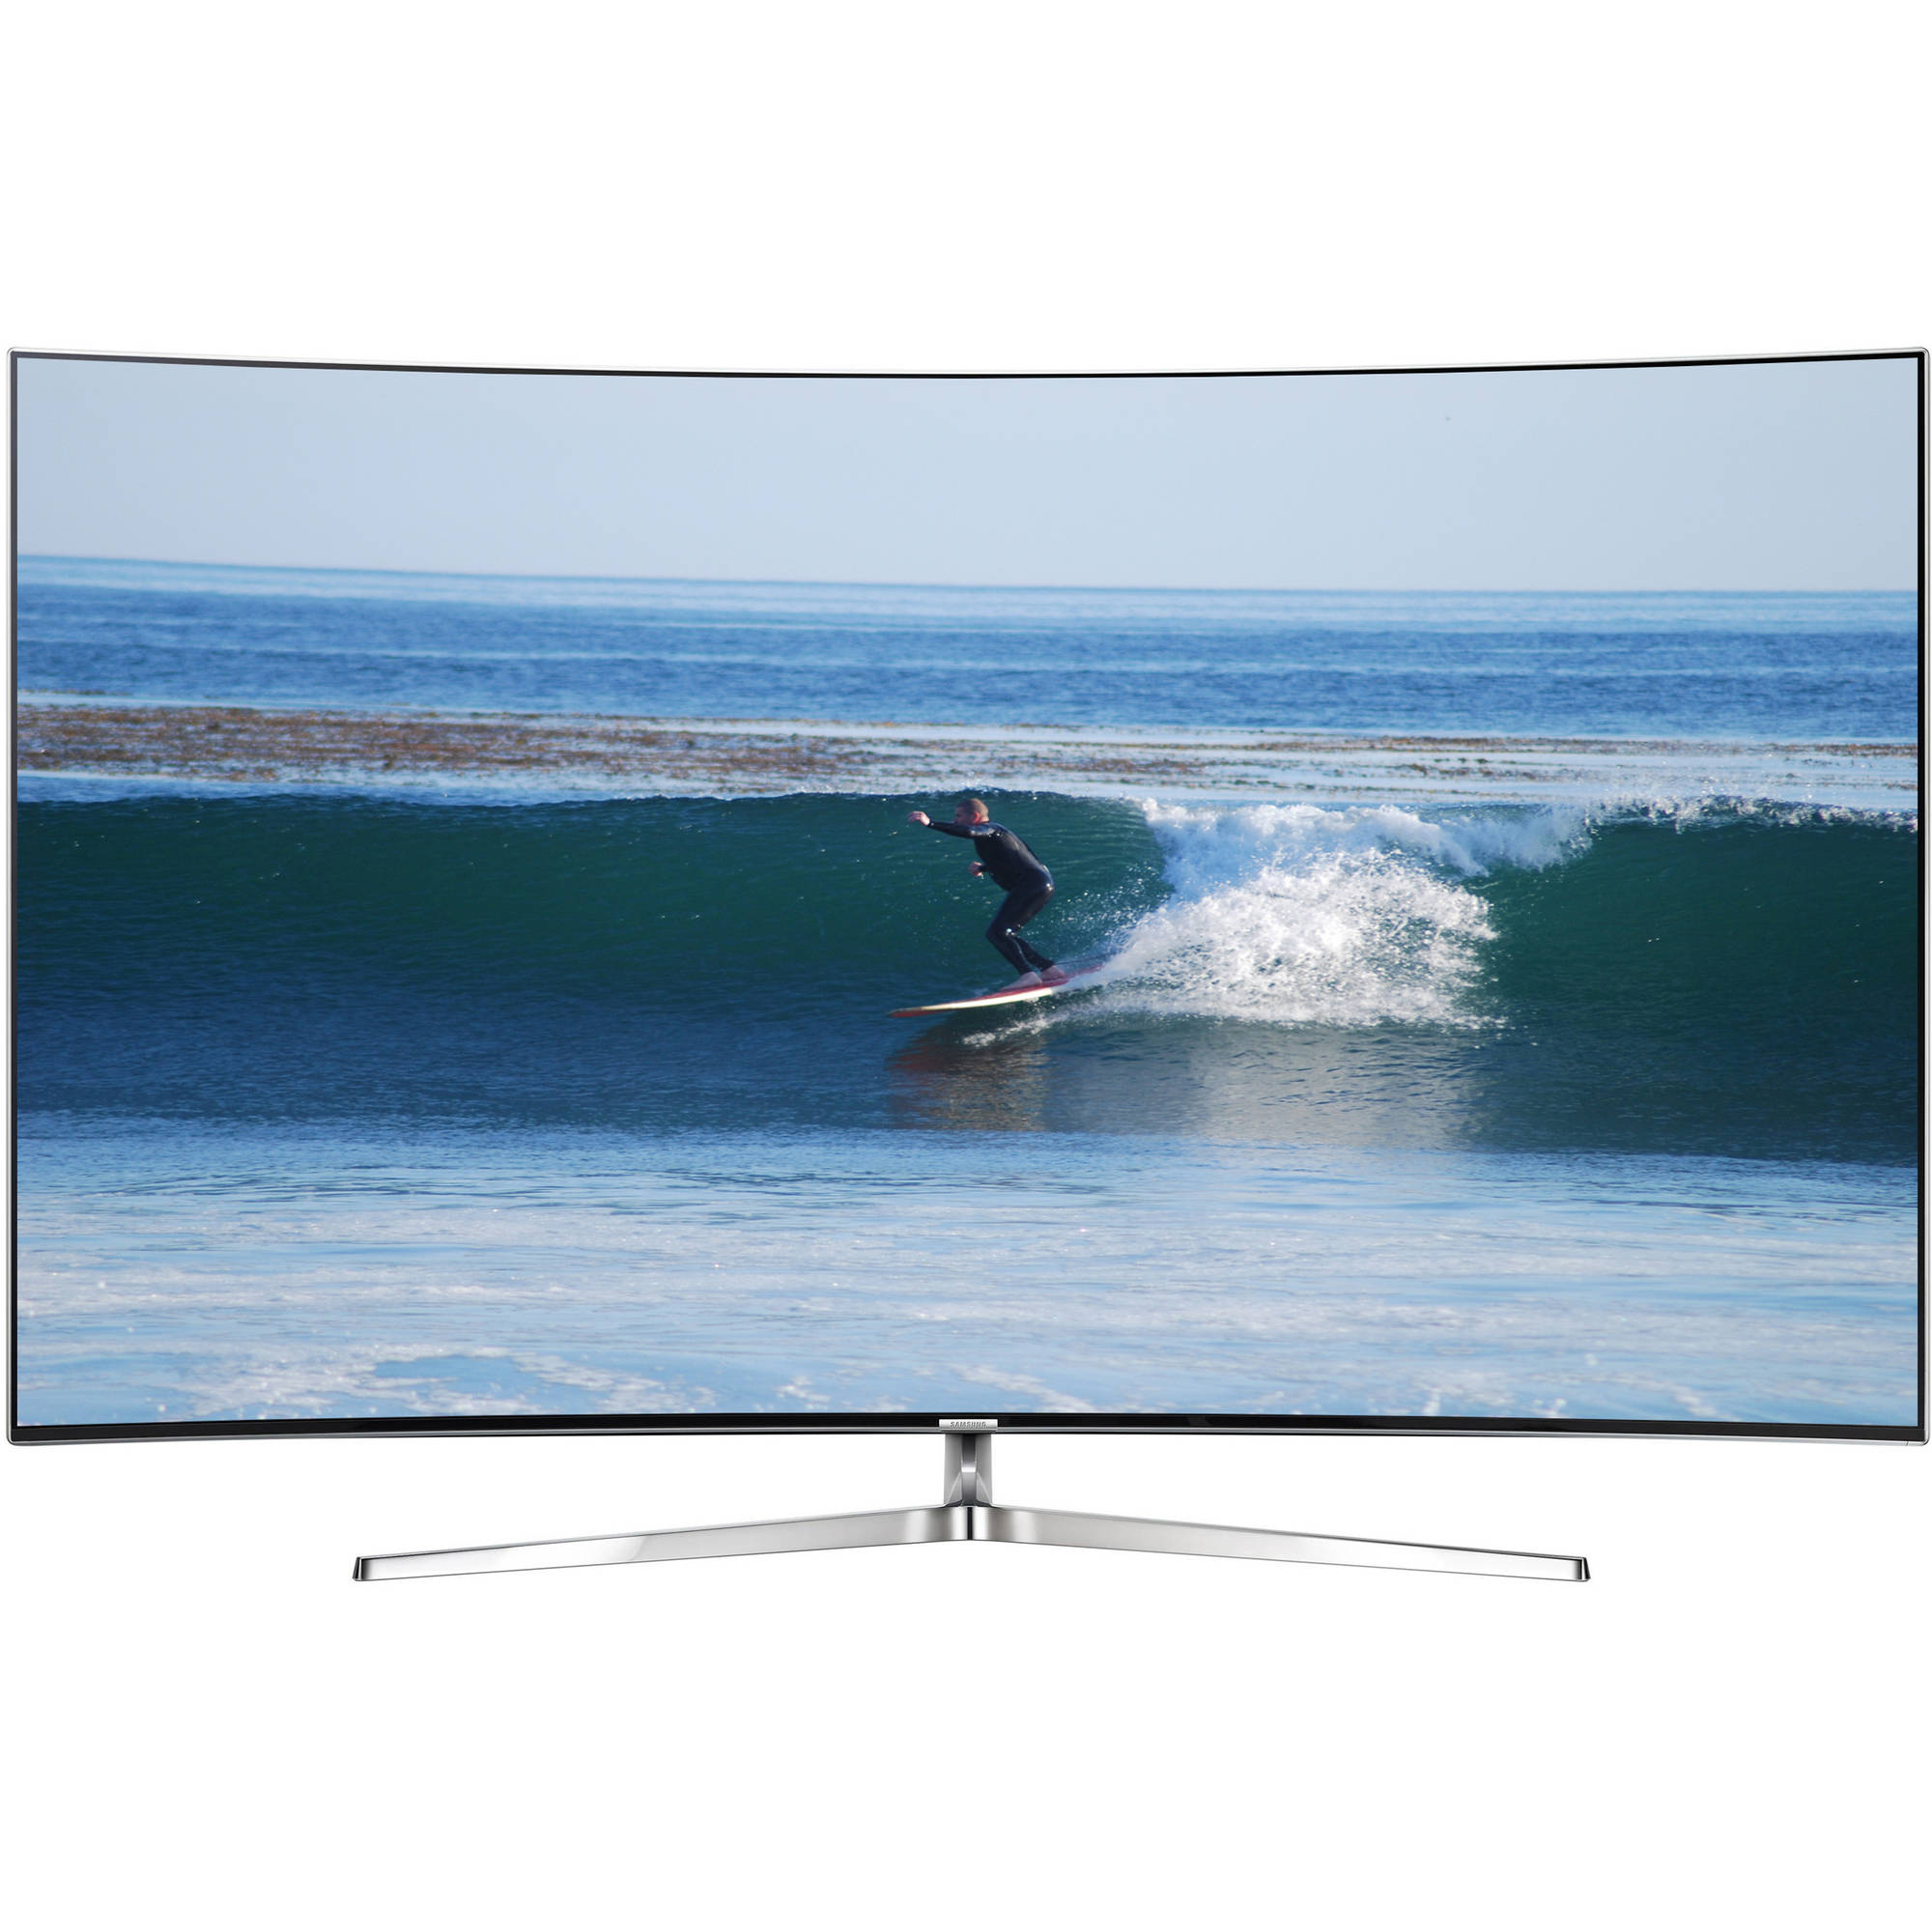 Curved TVs - Top LCD LED TV